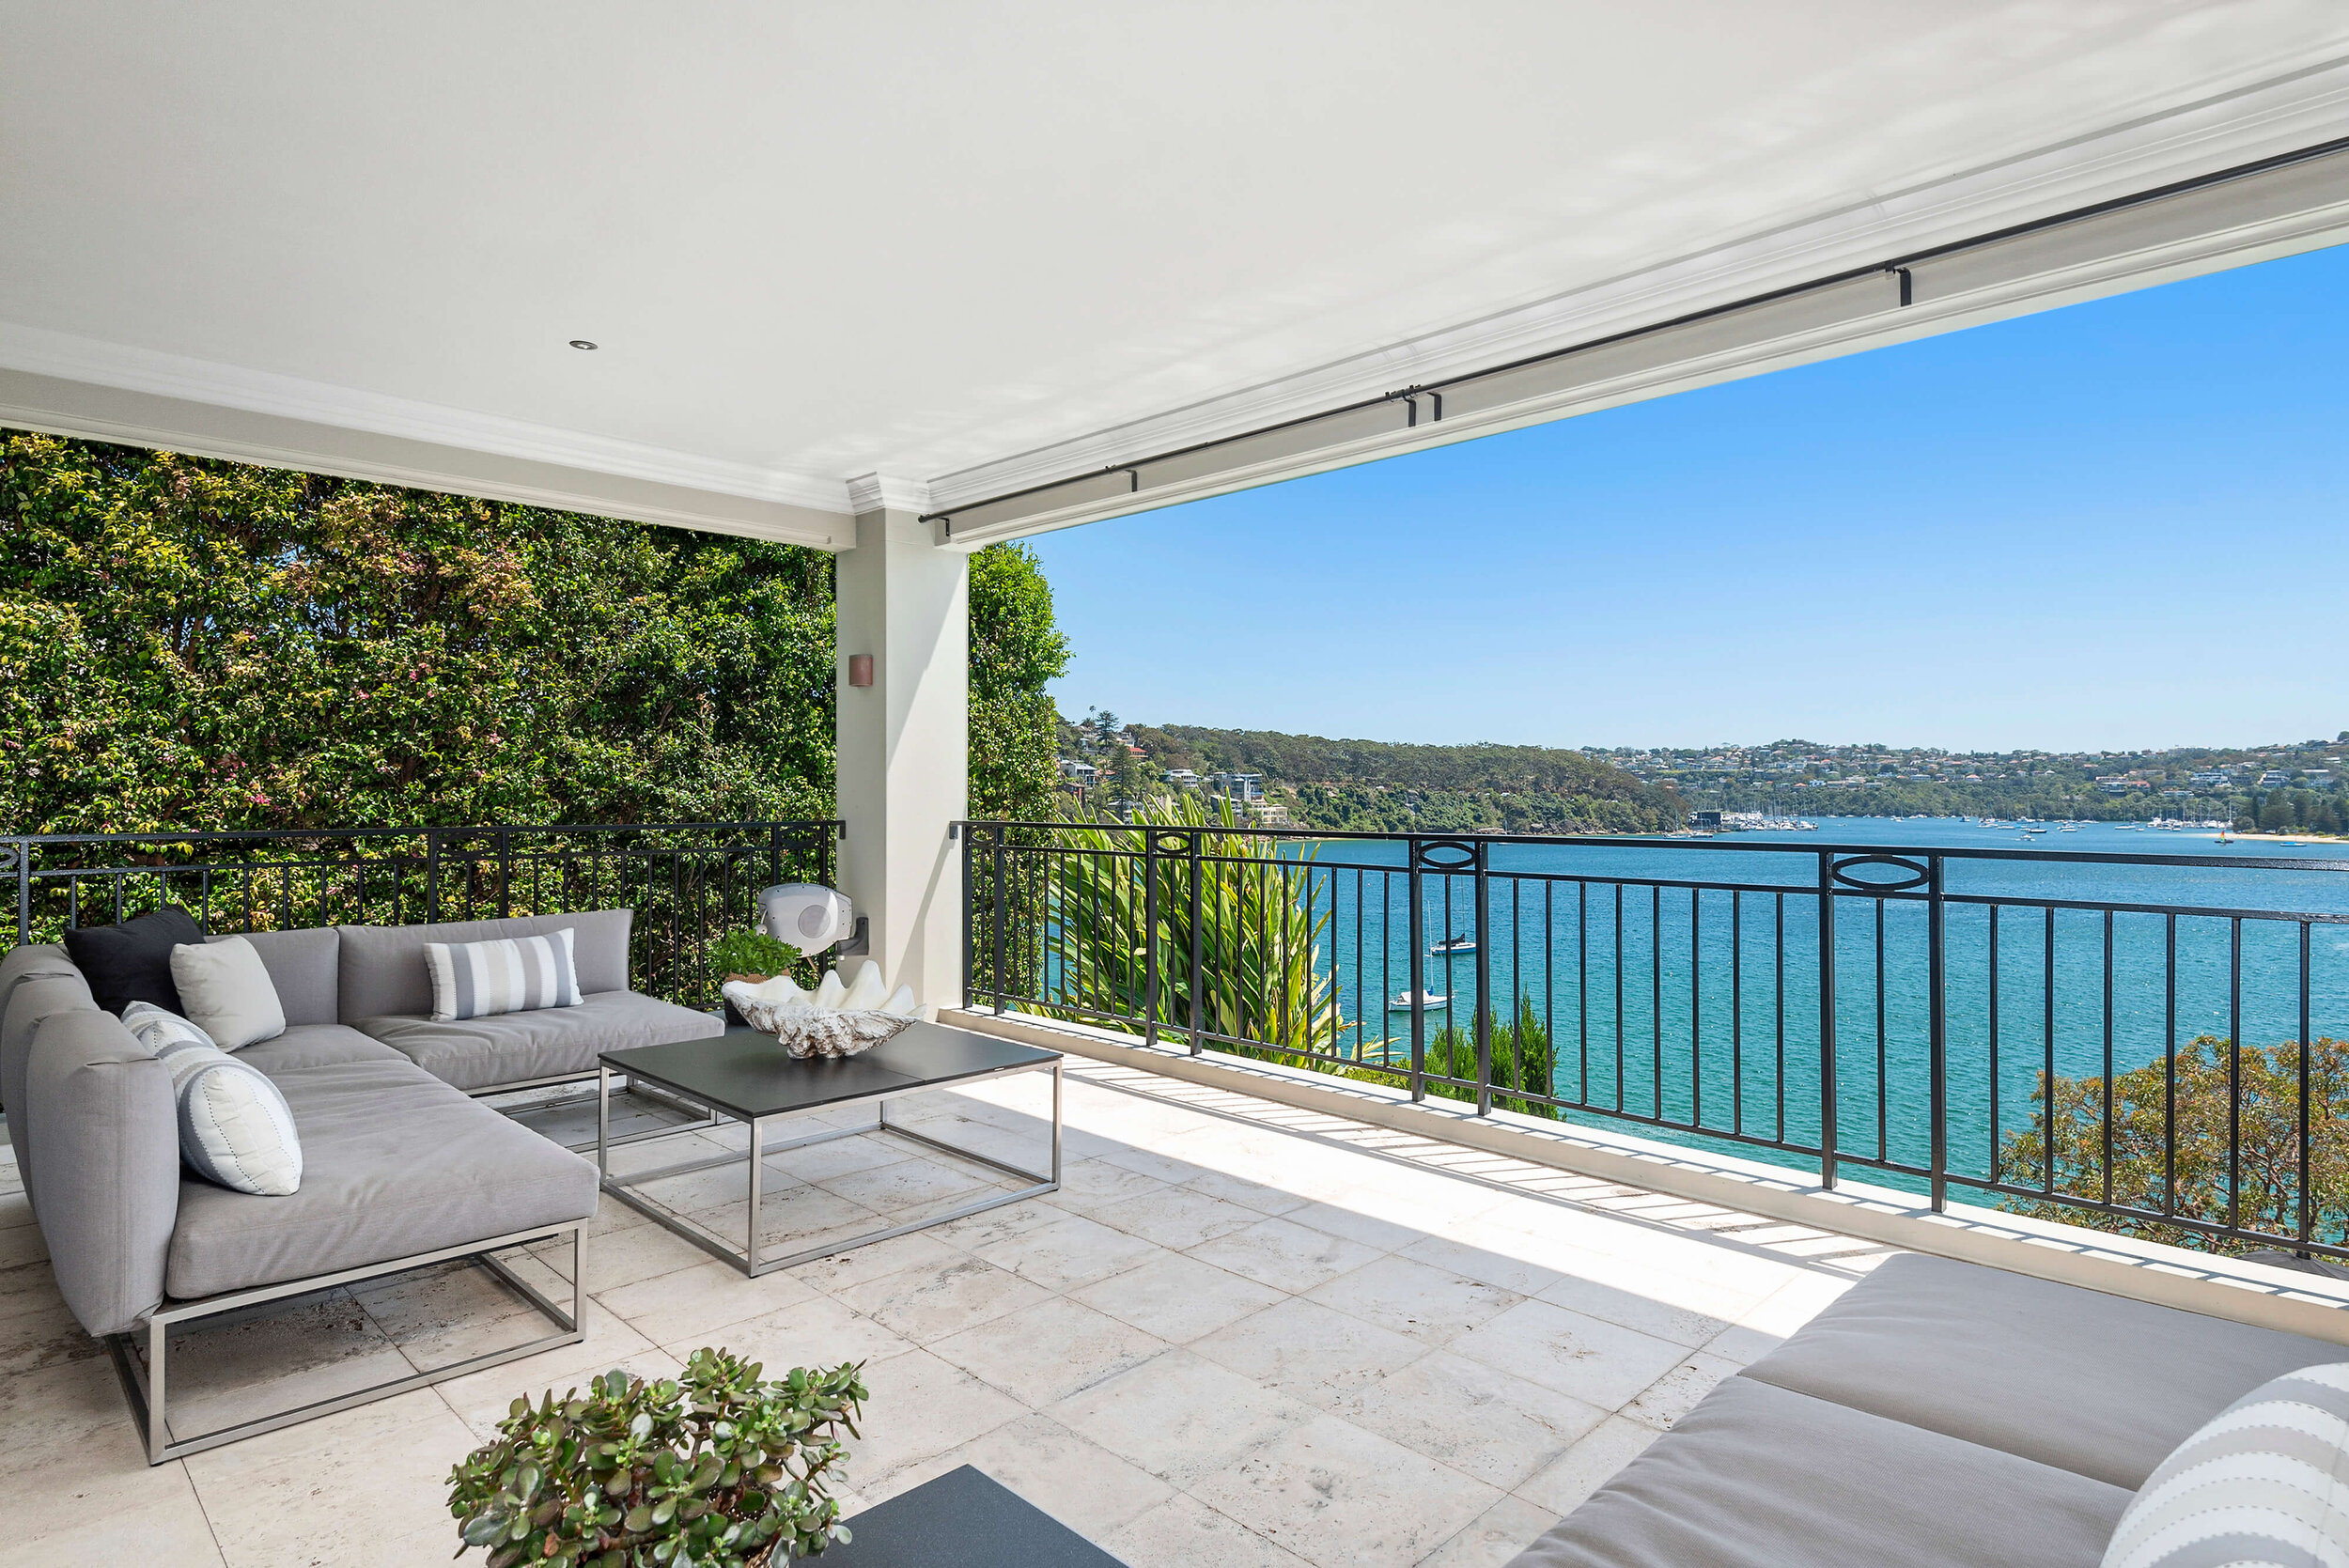 Lifestyles of the rich and famous: Can you imagine sitting here?!